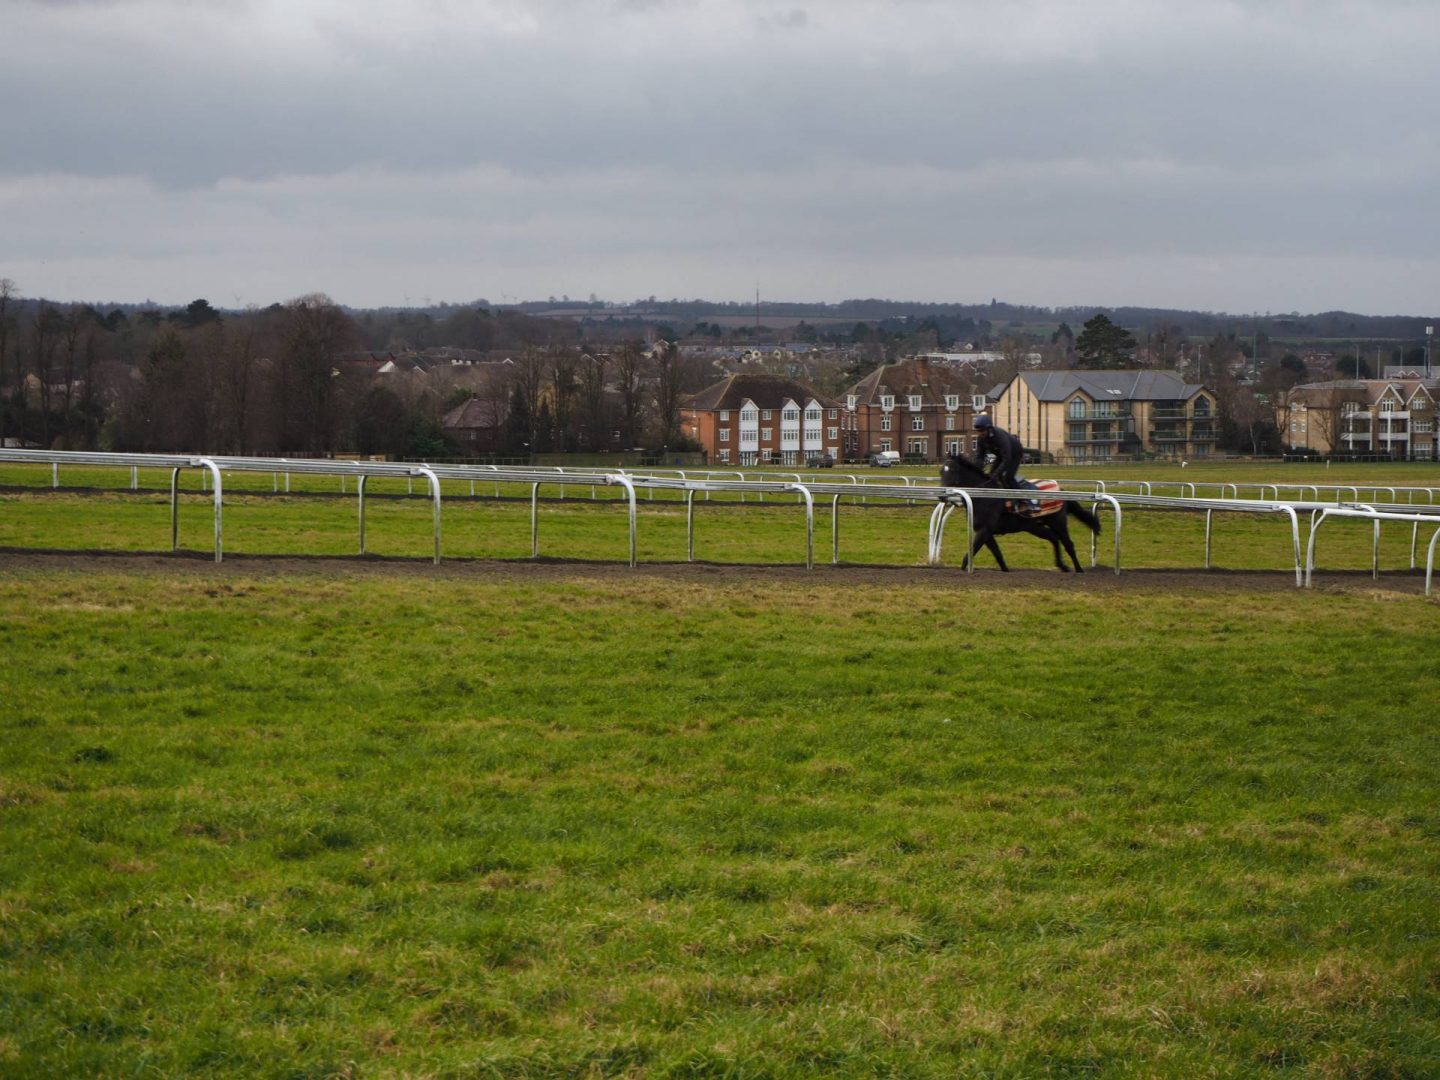 Horse on the Warren Hill gallop tracks in newmarket